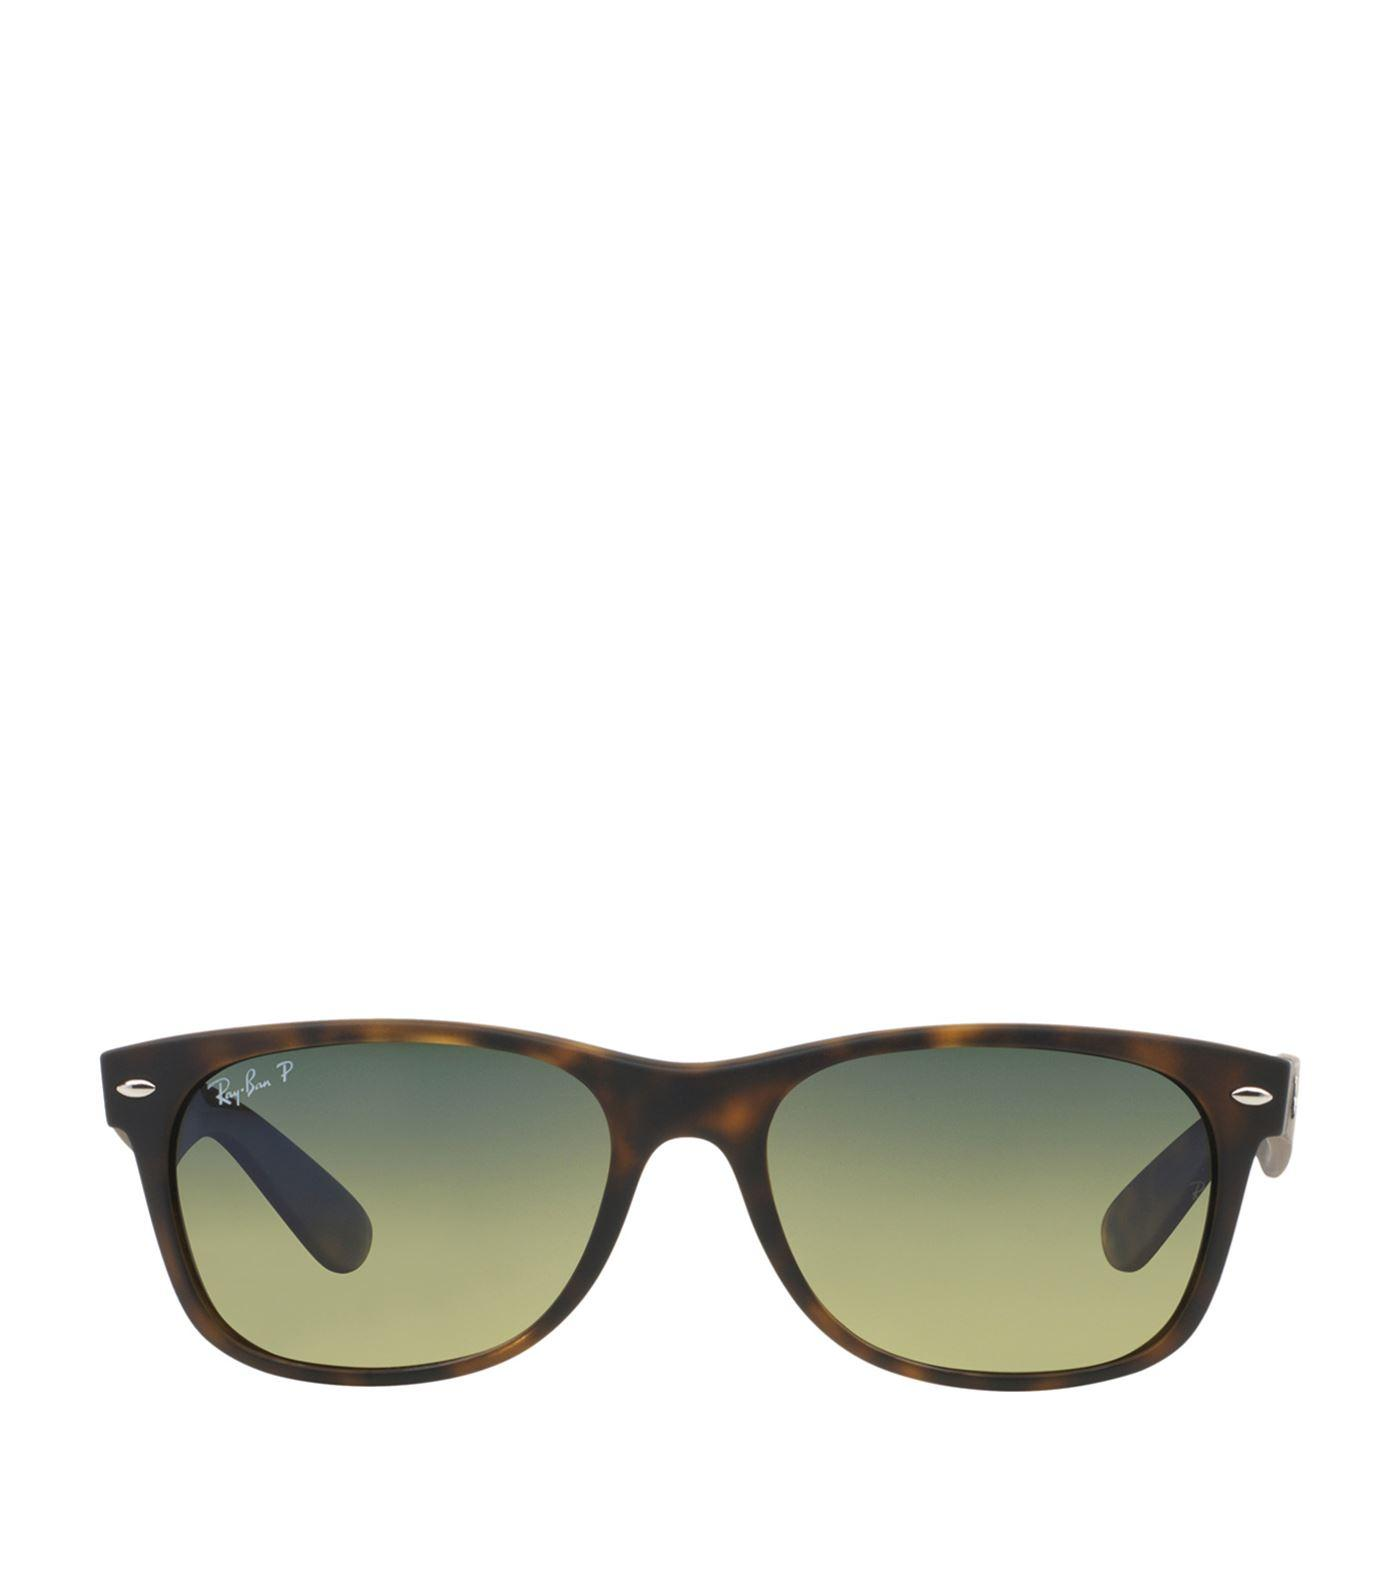 8d3716f8ff Ray Ban Ray-Ban Unisex Rb2132 - Frame Color  Tortoise